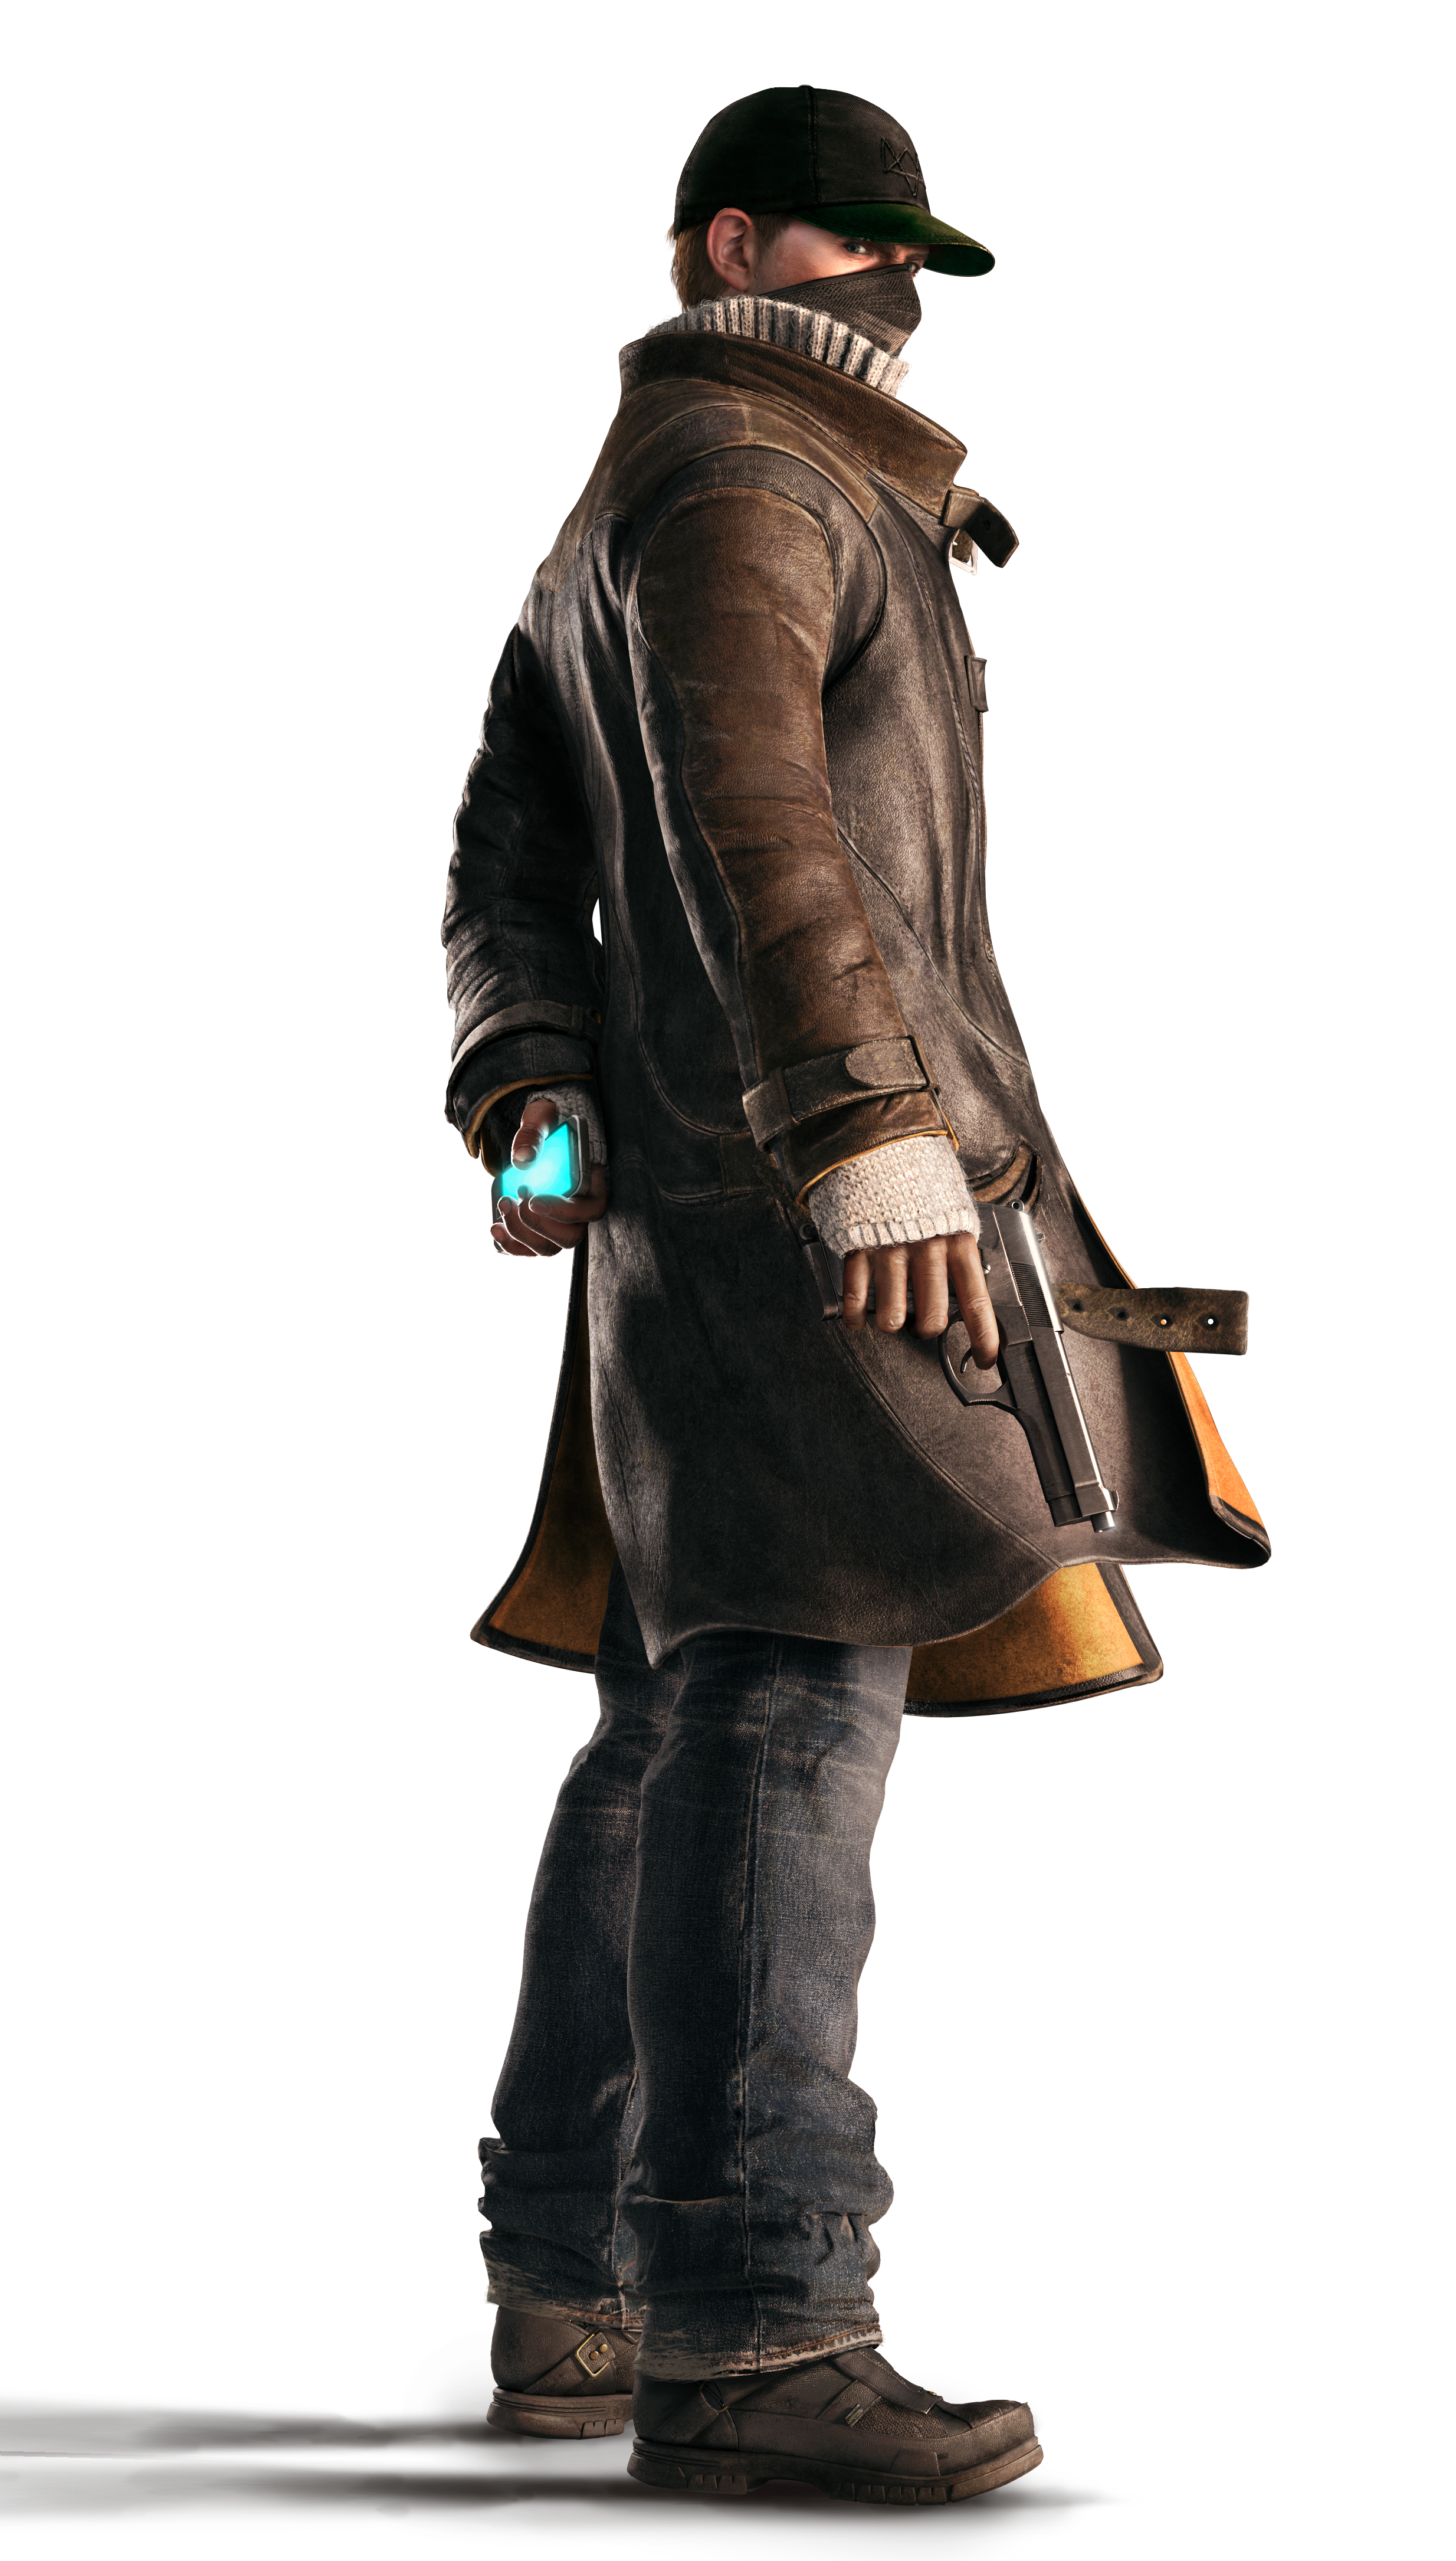 Watch Dogs PNG - 554